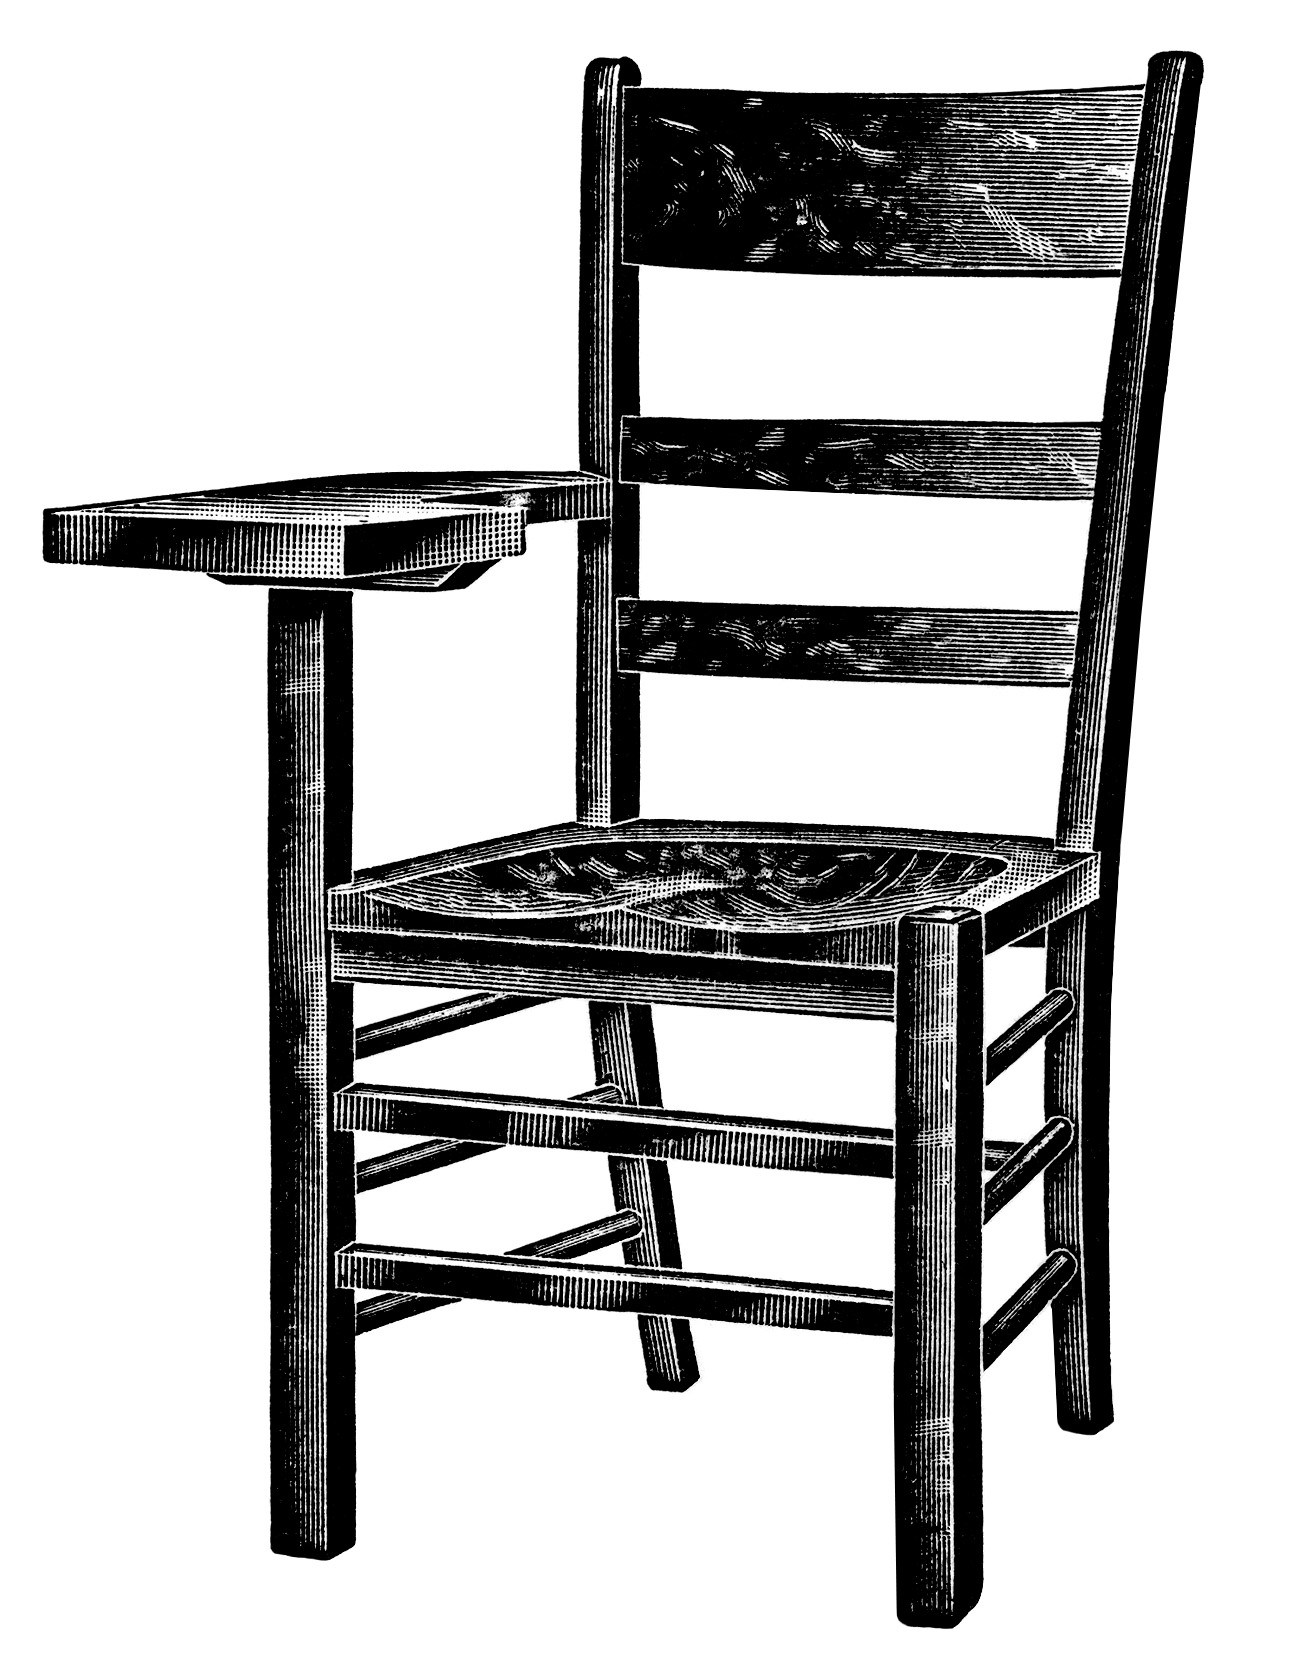 Furniture clipart old chair And white arm black chair